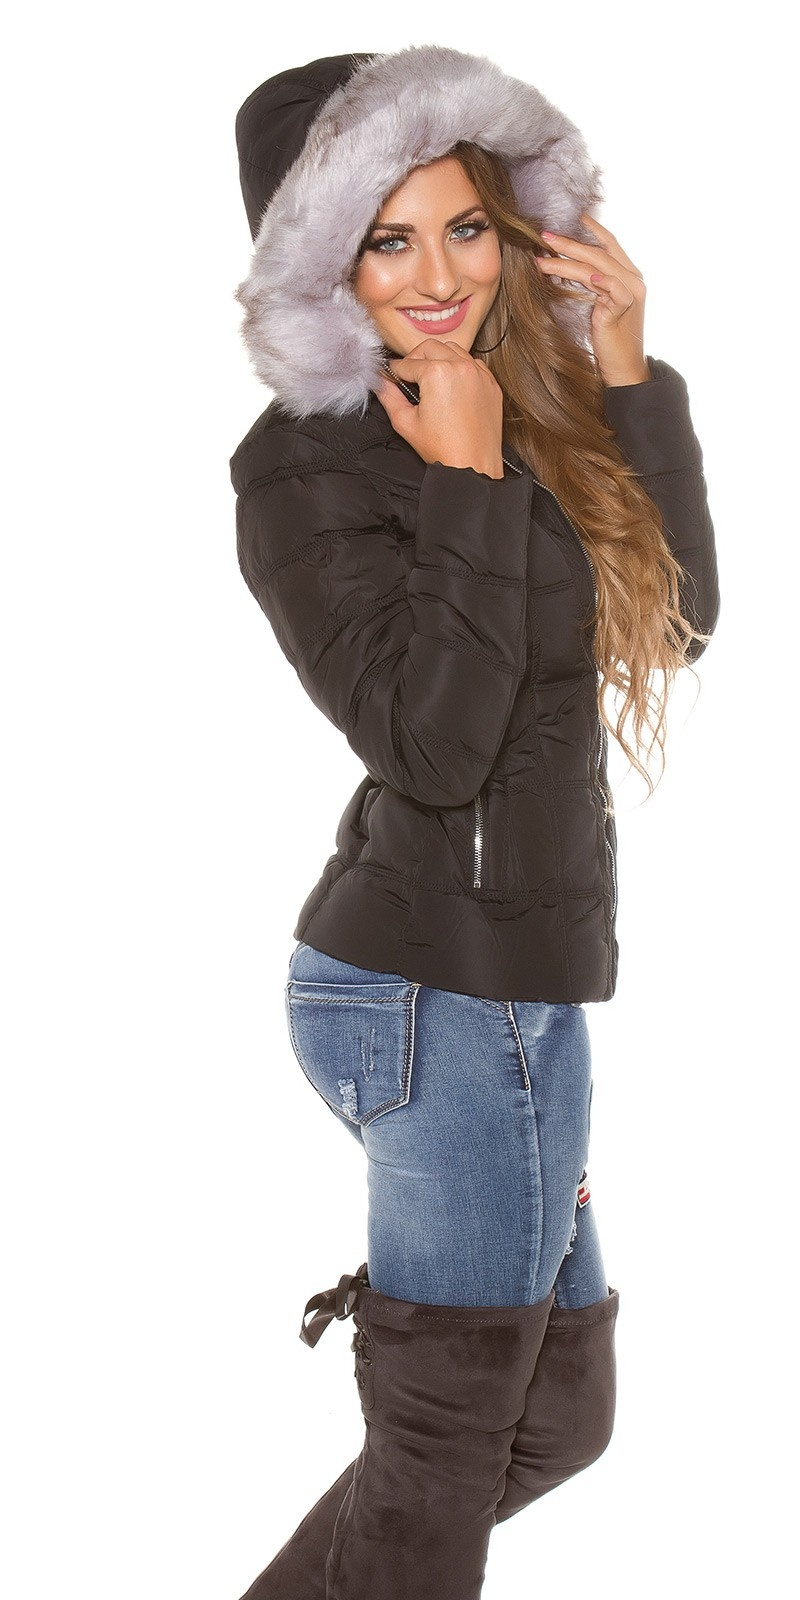 Trendy winterjacket,hoddie fake fur removable Black